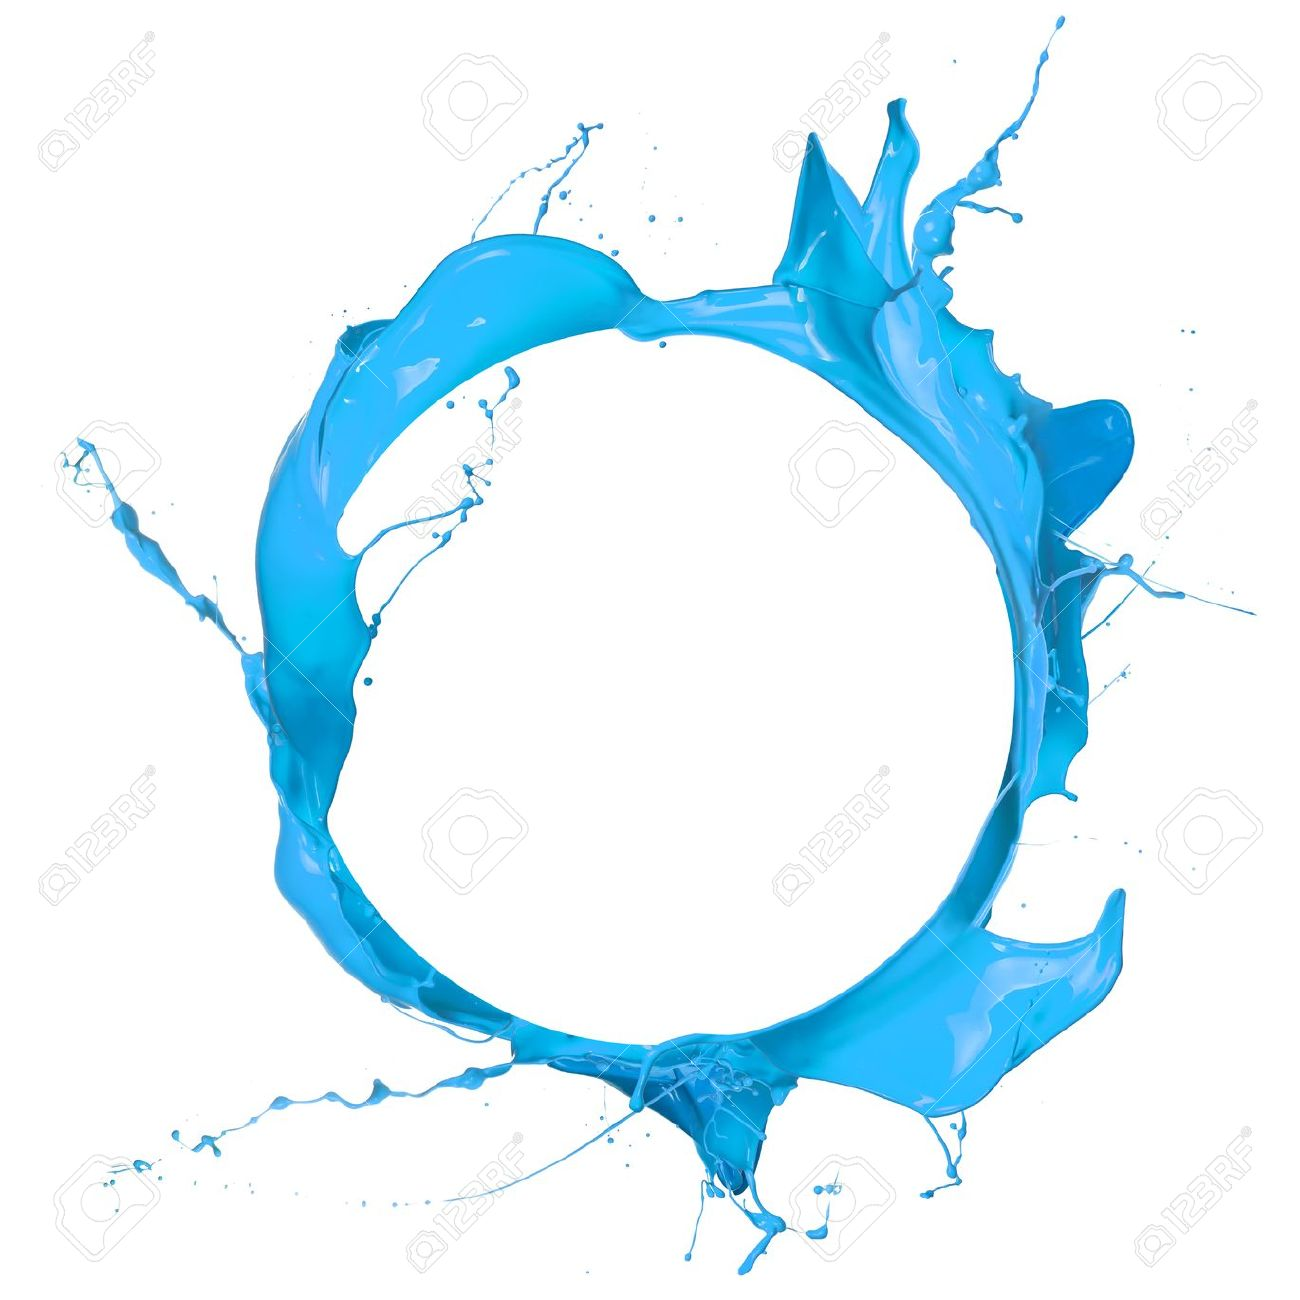 Blue Paint blue paint stock photos & pictures. royalty free blue paint images